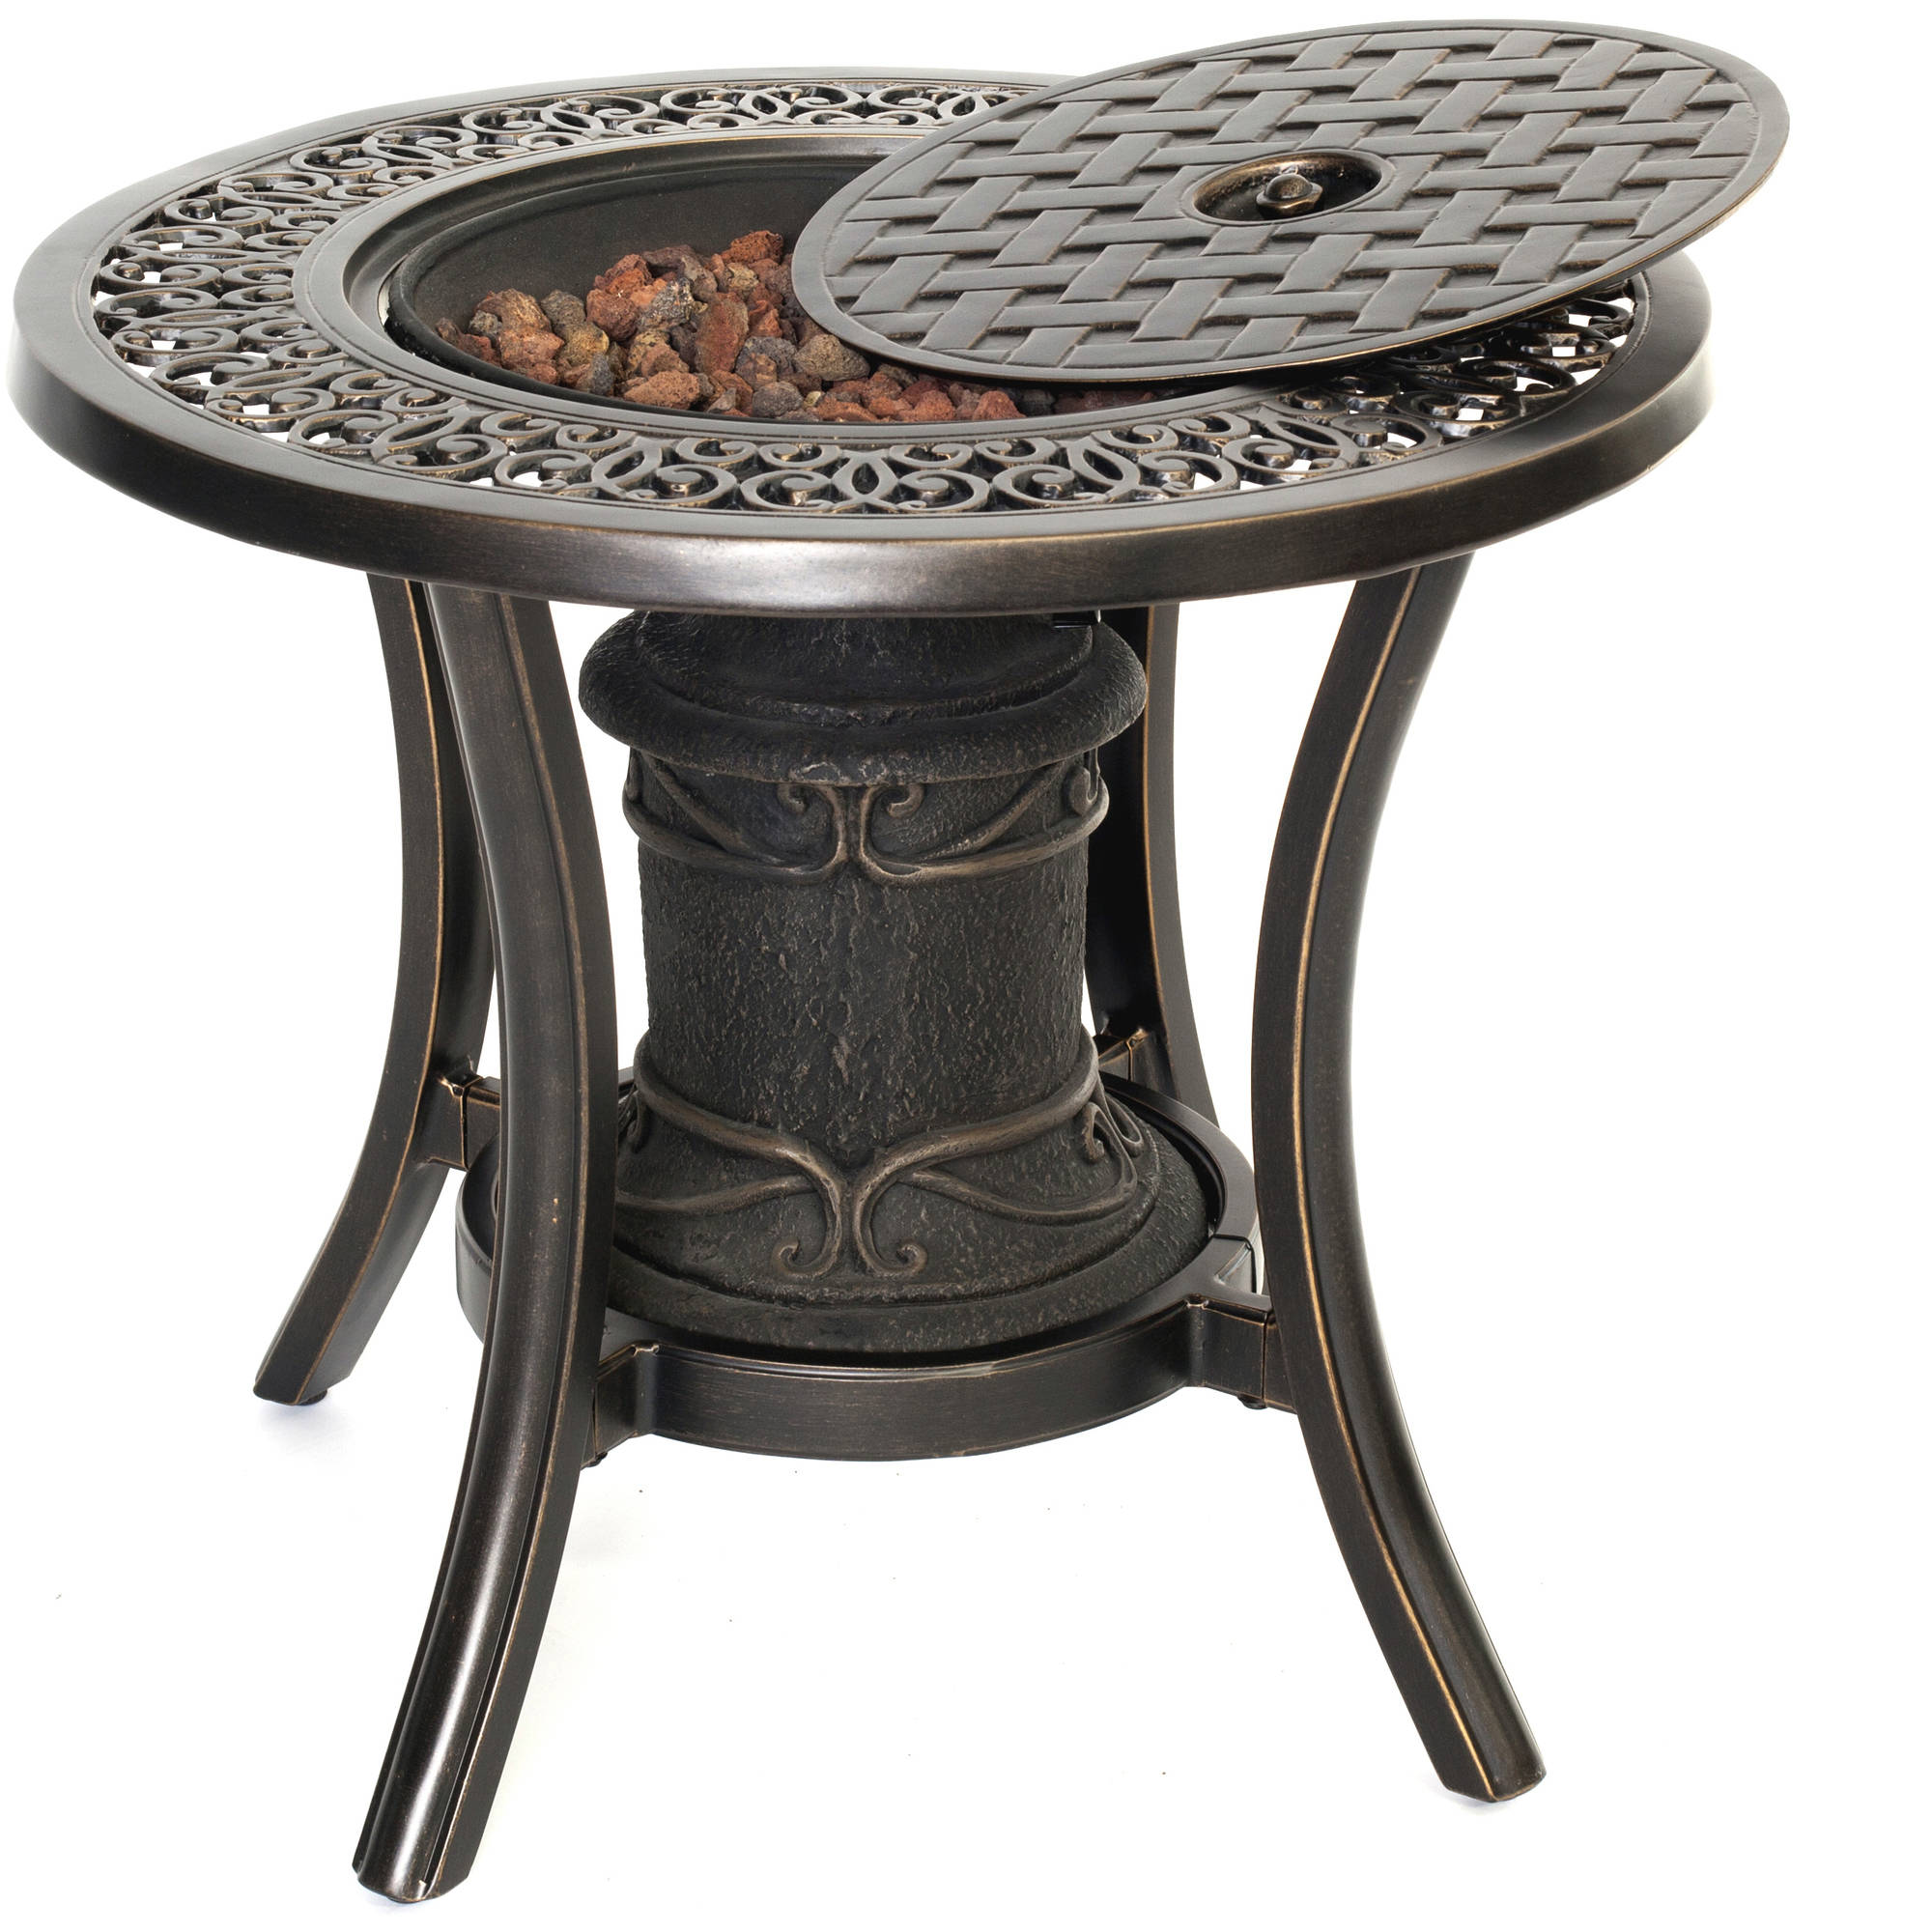 Hanover Outdoor 10,000 BTU Cast-Top Firepit Side Table by Hanover Outdoor